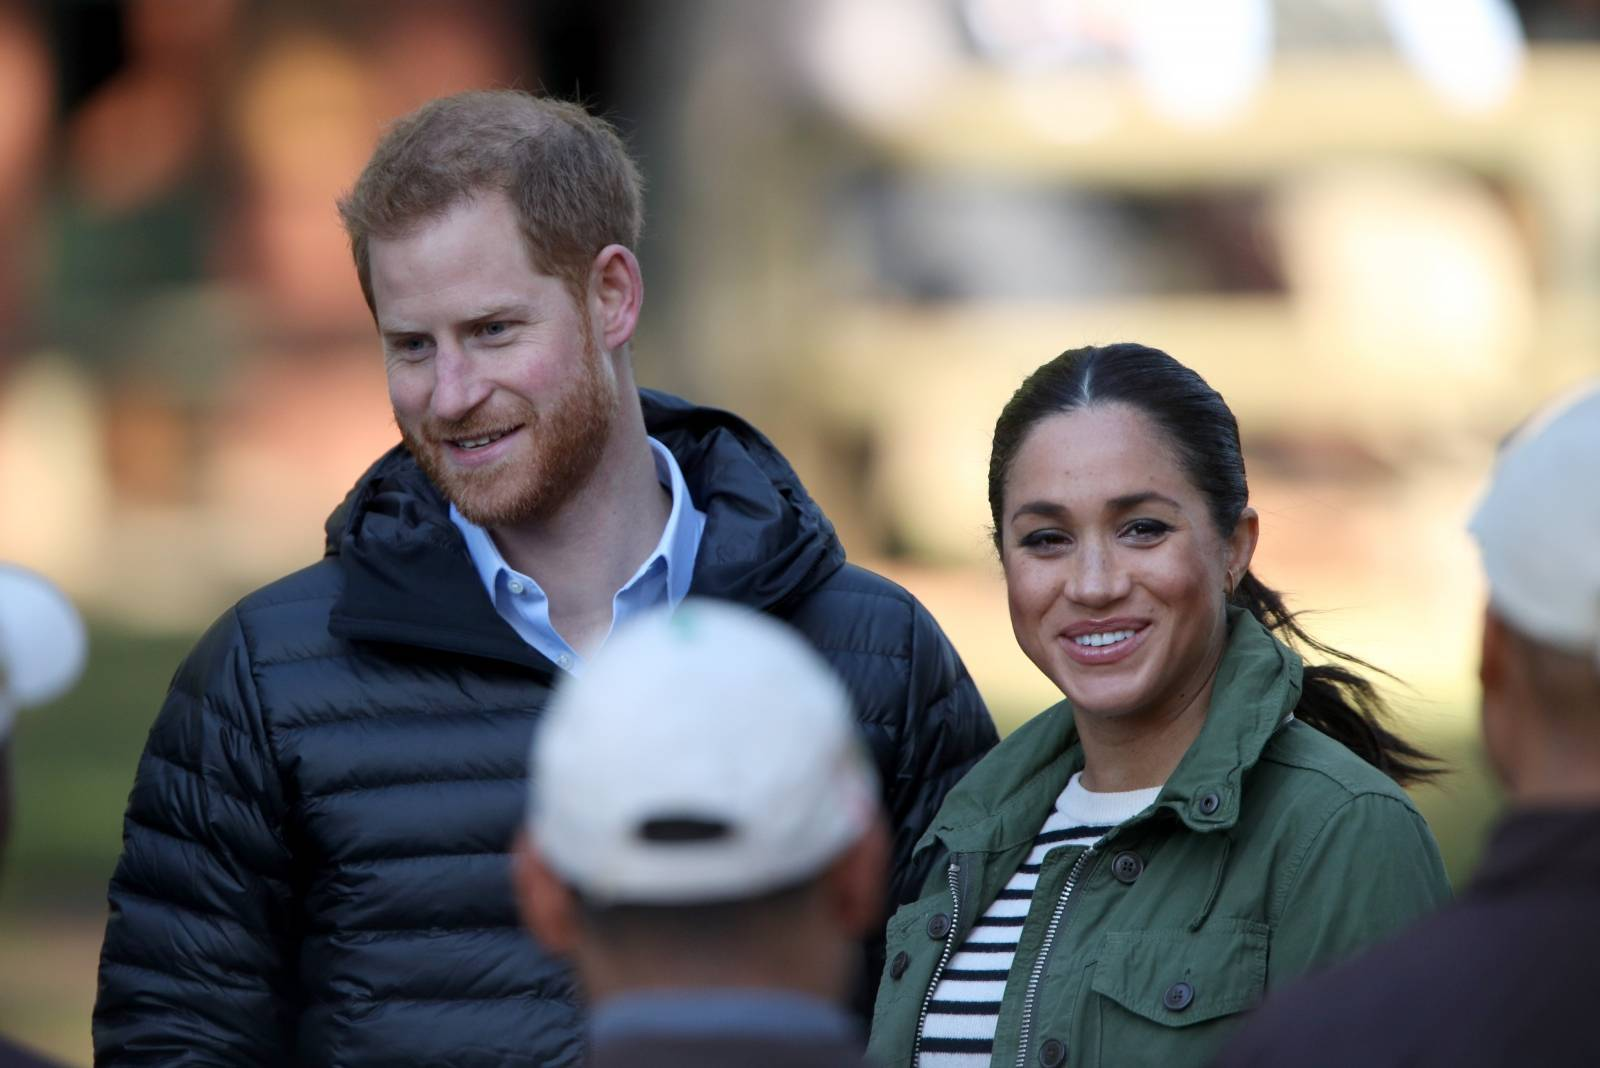 Duke and Duchess of Sussex visit to Morocco - Day 3